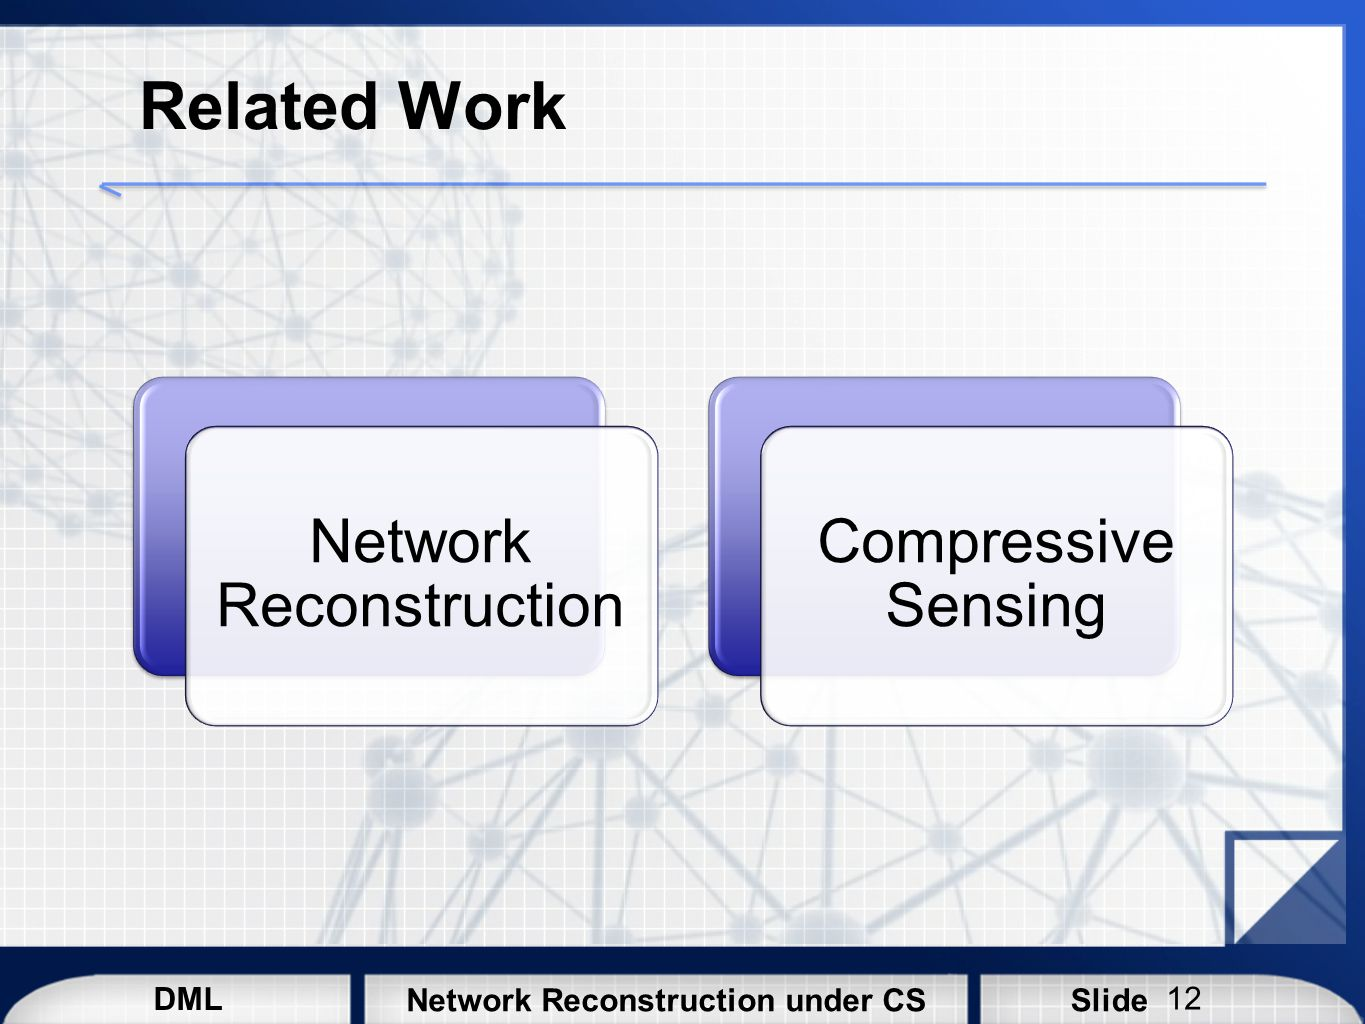 Network Reconstruction